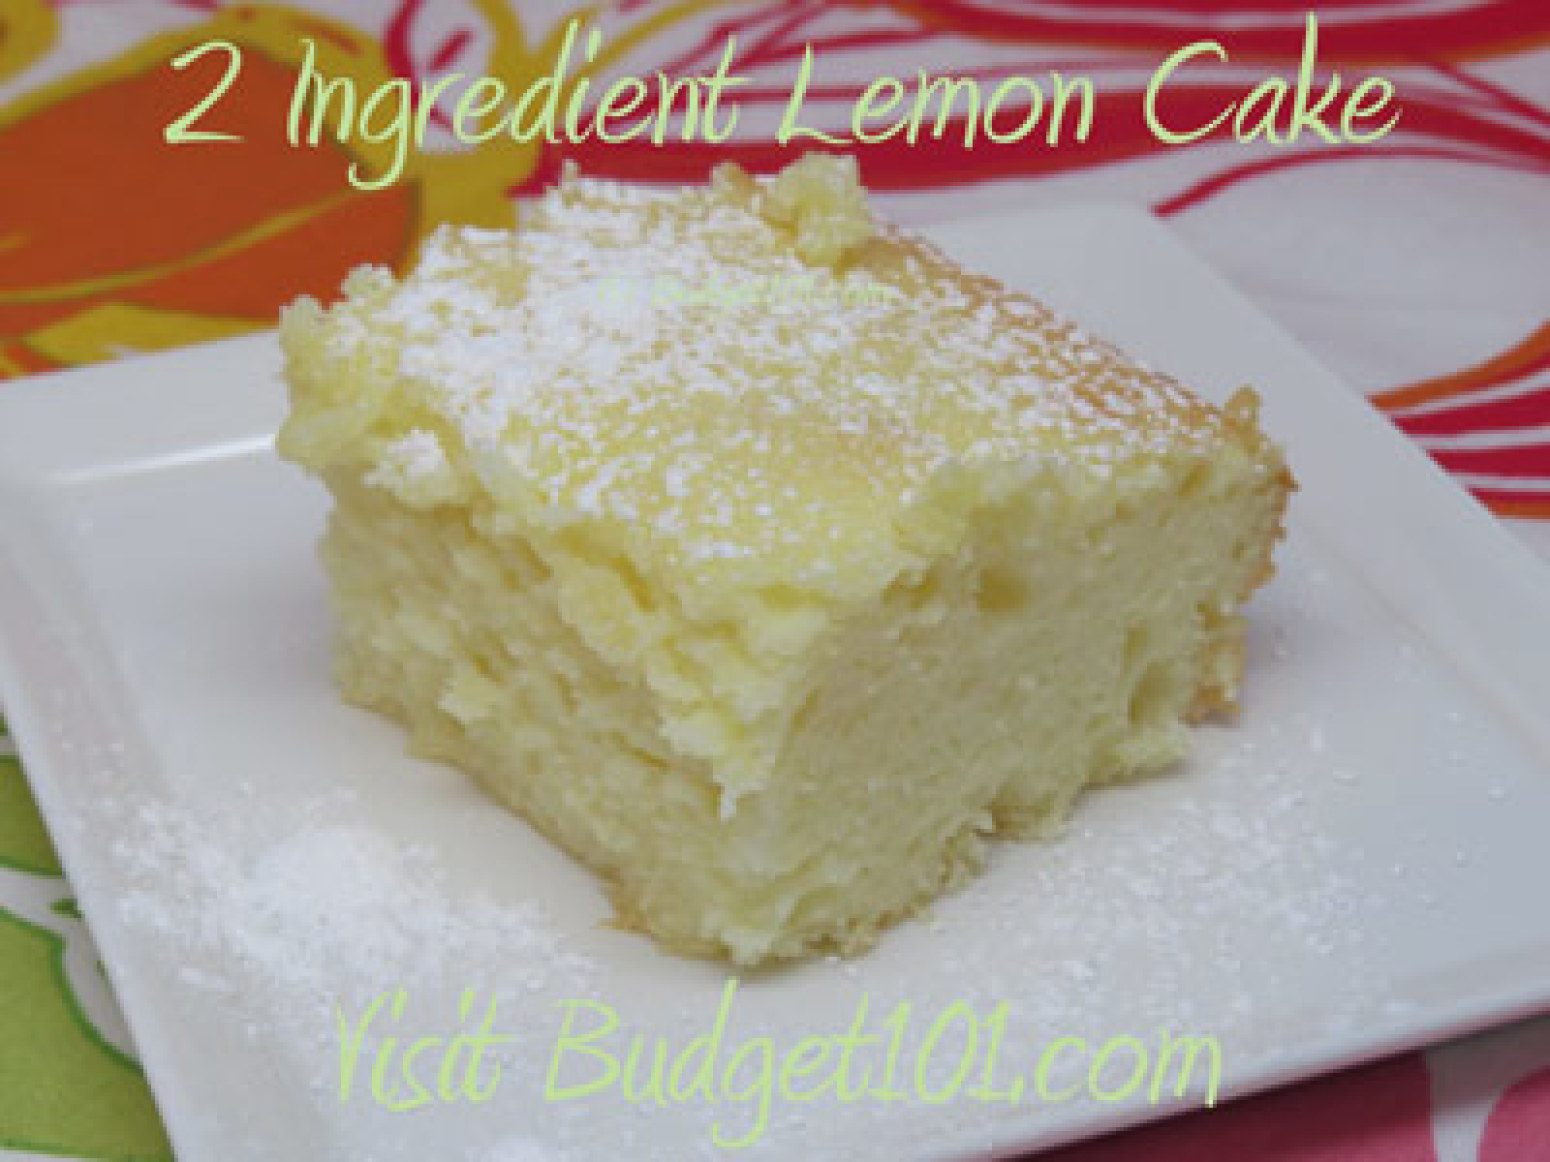 Cake Recipes With Pictures And Ingredients : 2 Ingredient Lemon Cake Recipe 2 Just A Pinch Recipes